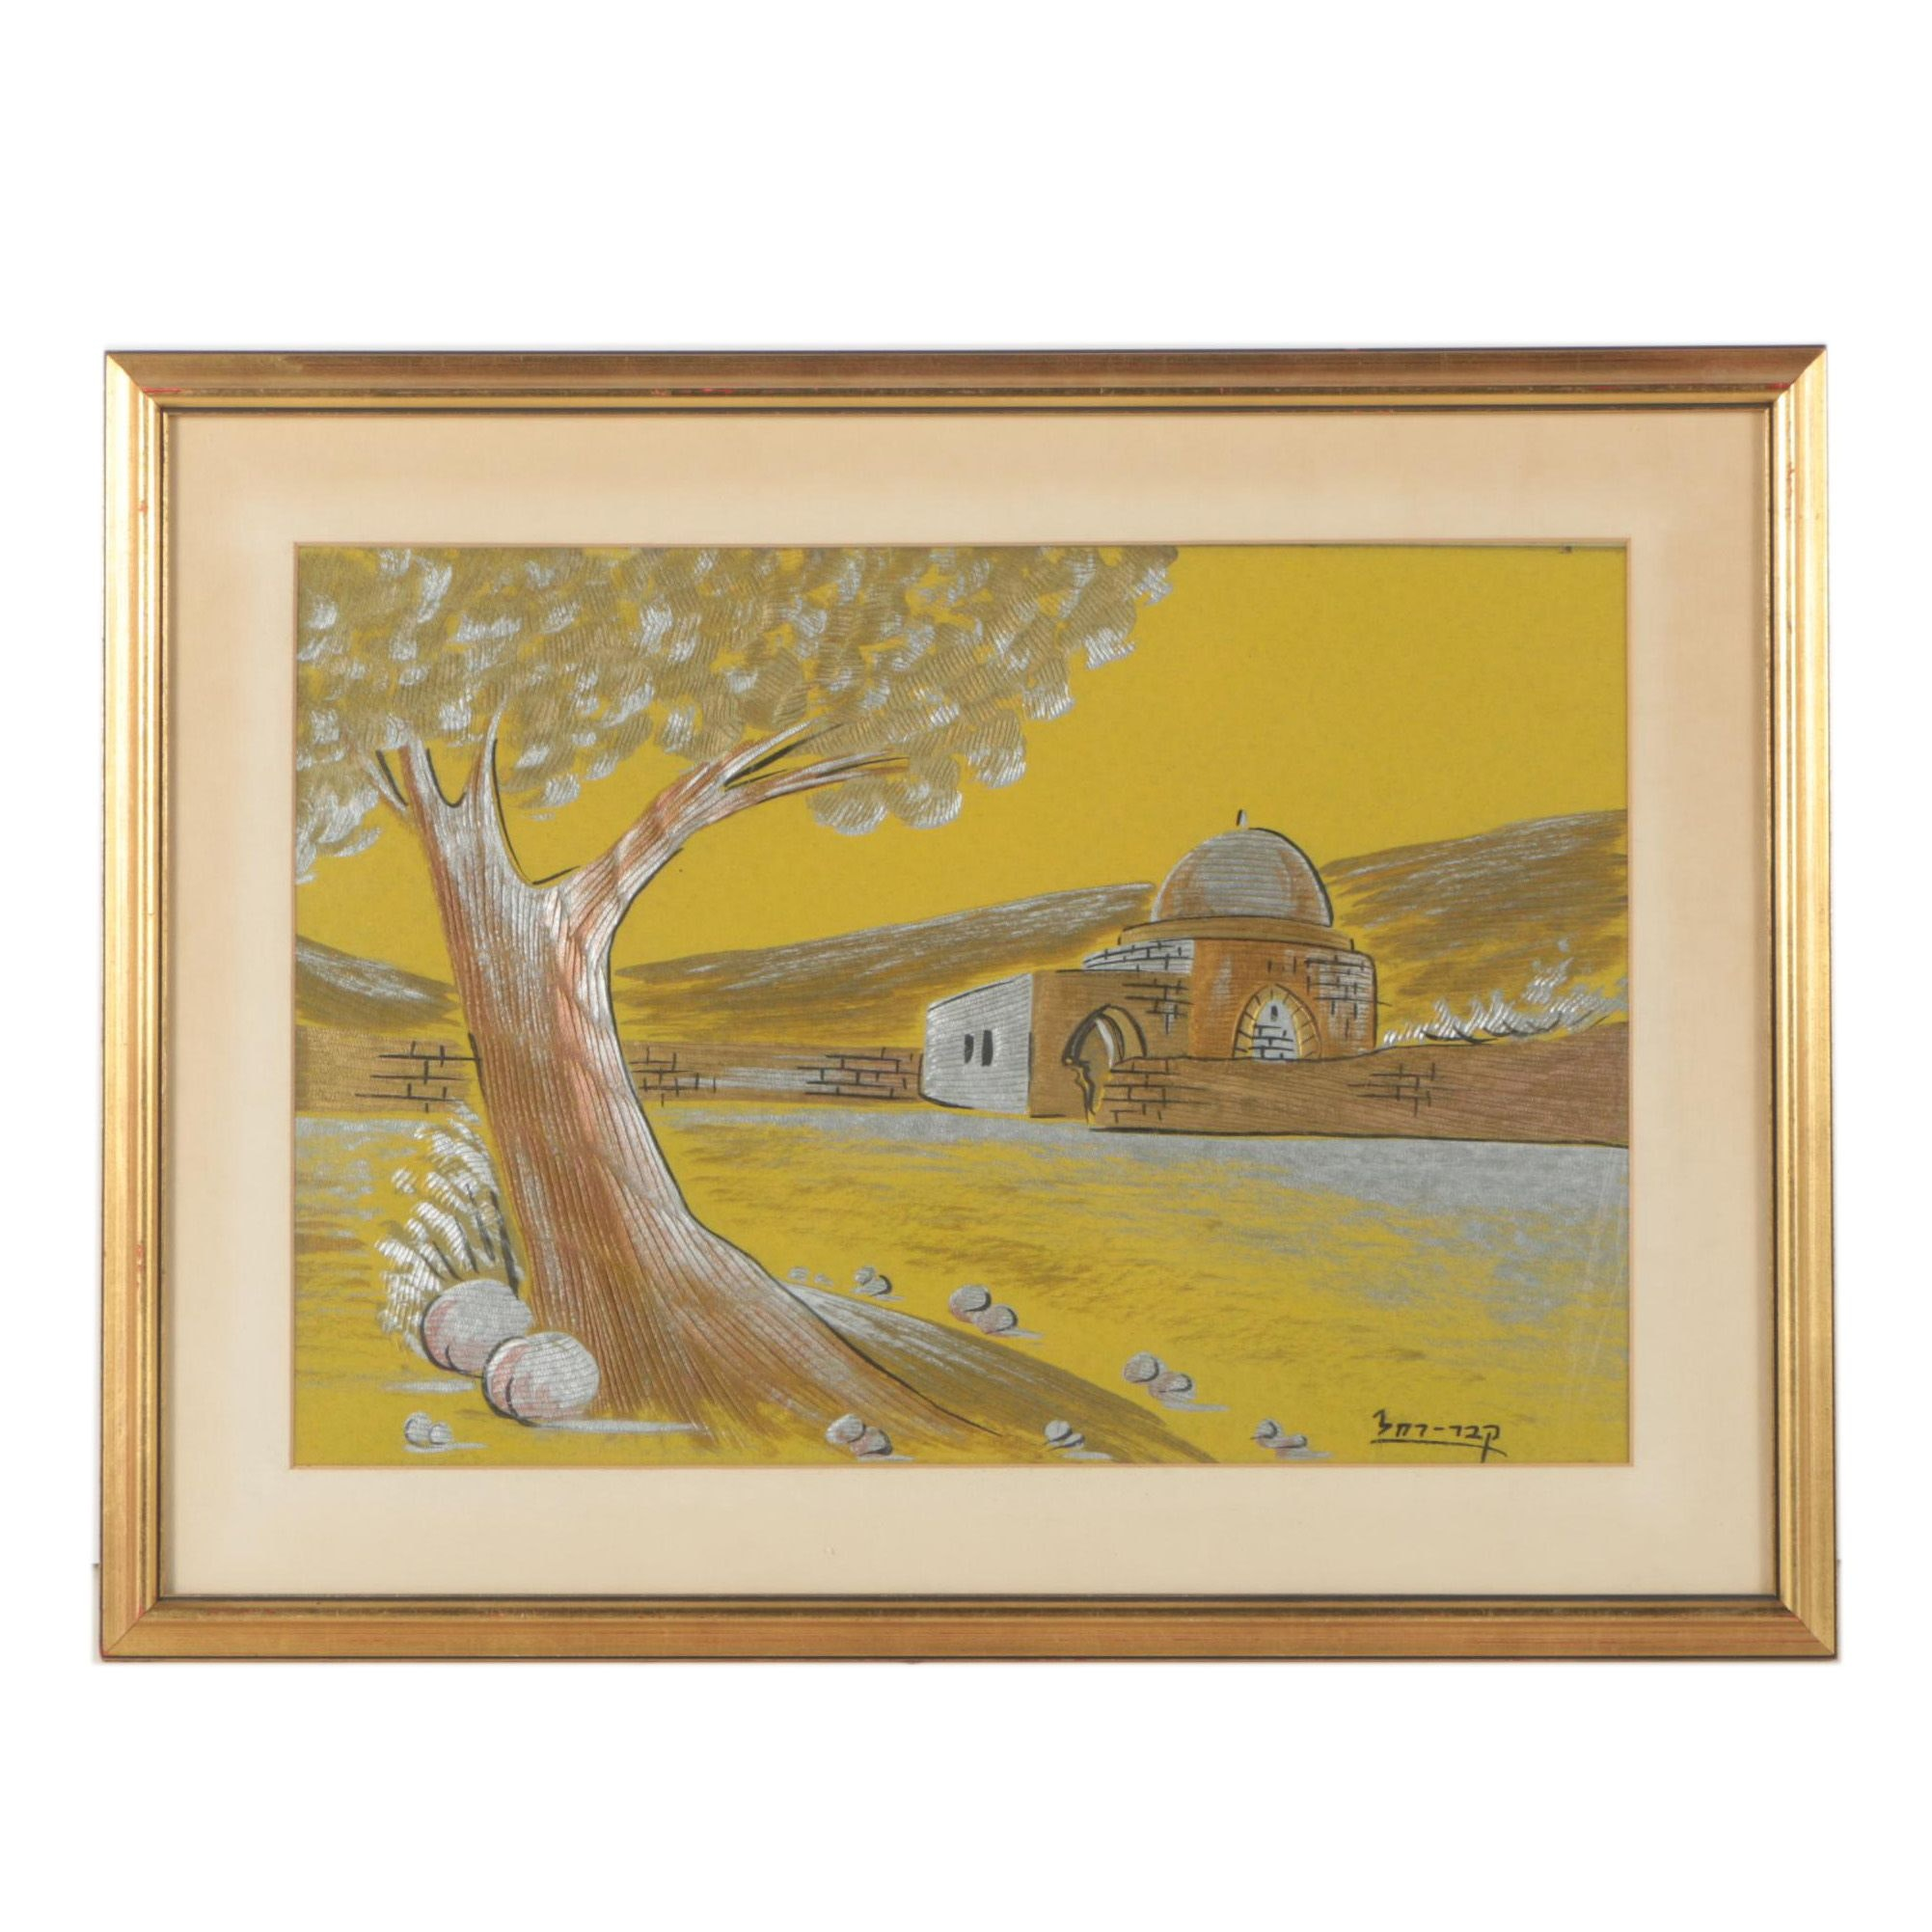 Oil Painting on Textured Paper of Landscape with Tree and Domed Building